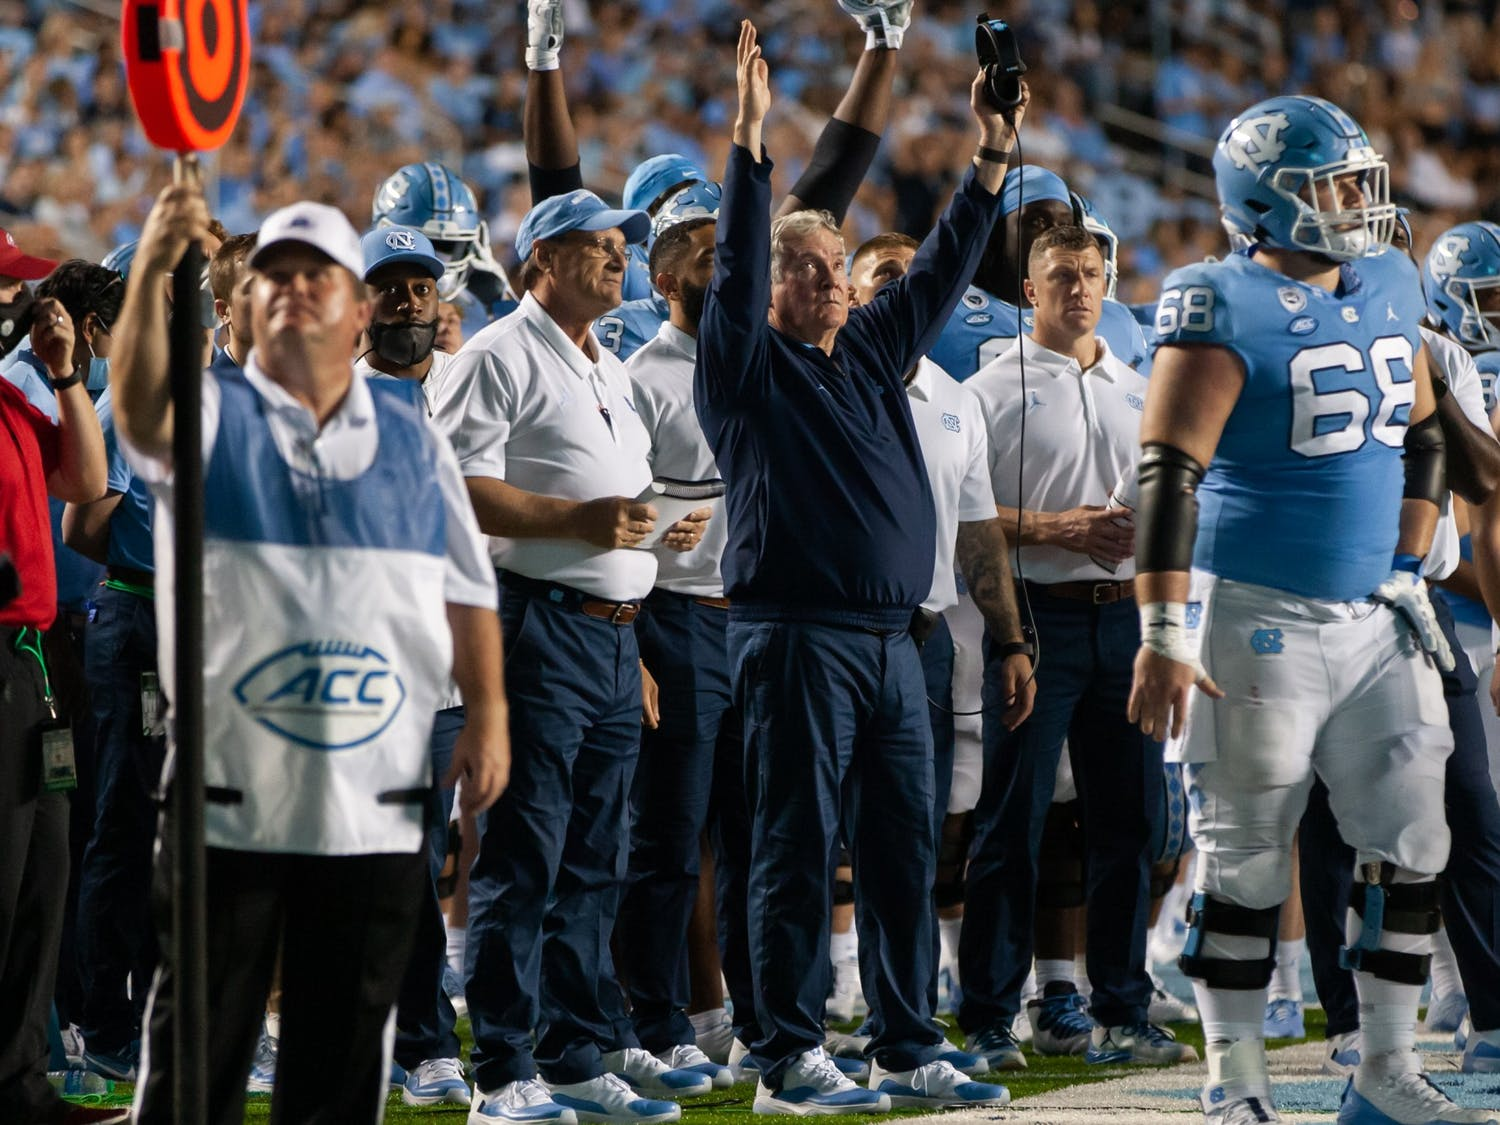 """UNC head coach Mack Brown throws up a """"goal"""" sign as the referees reviewed an instant replay during the Tar Heels' home matchup in Kenan Memorial Stadium on Saturday, Sept. 11, 2021 against the Georgia State Panthers. The Tar Heels won 59-17."""